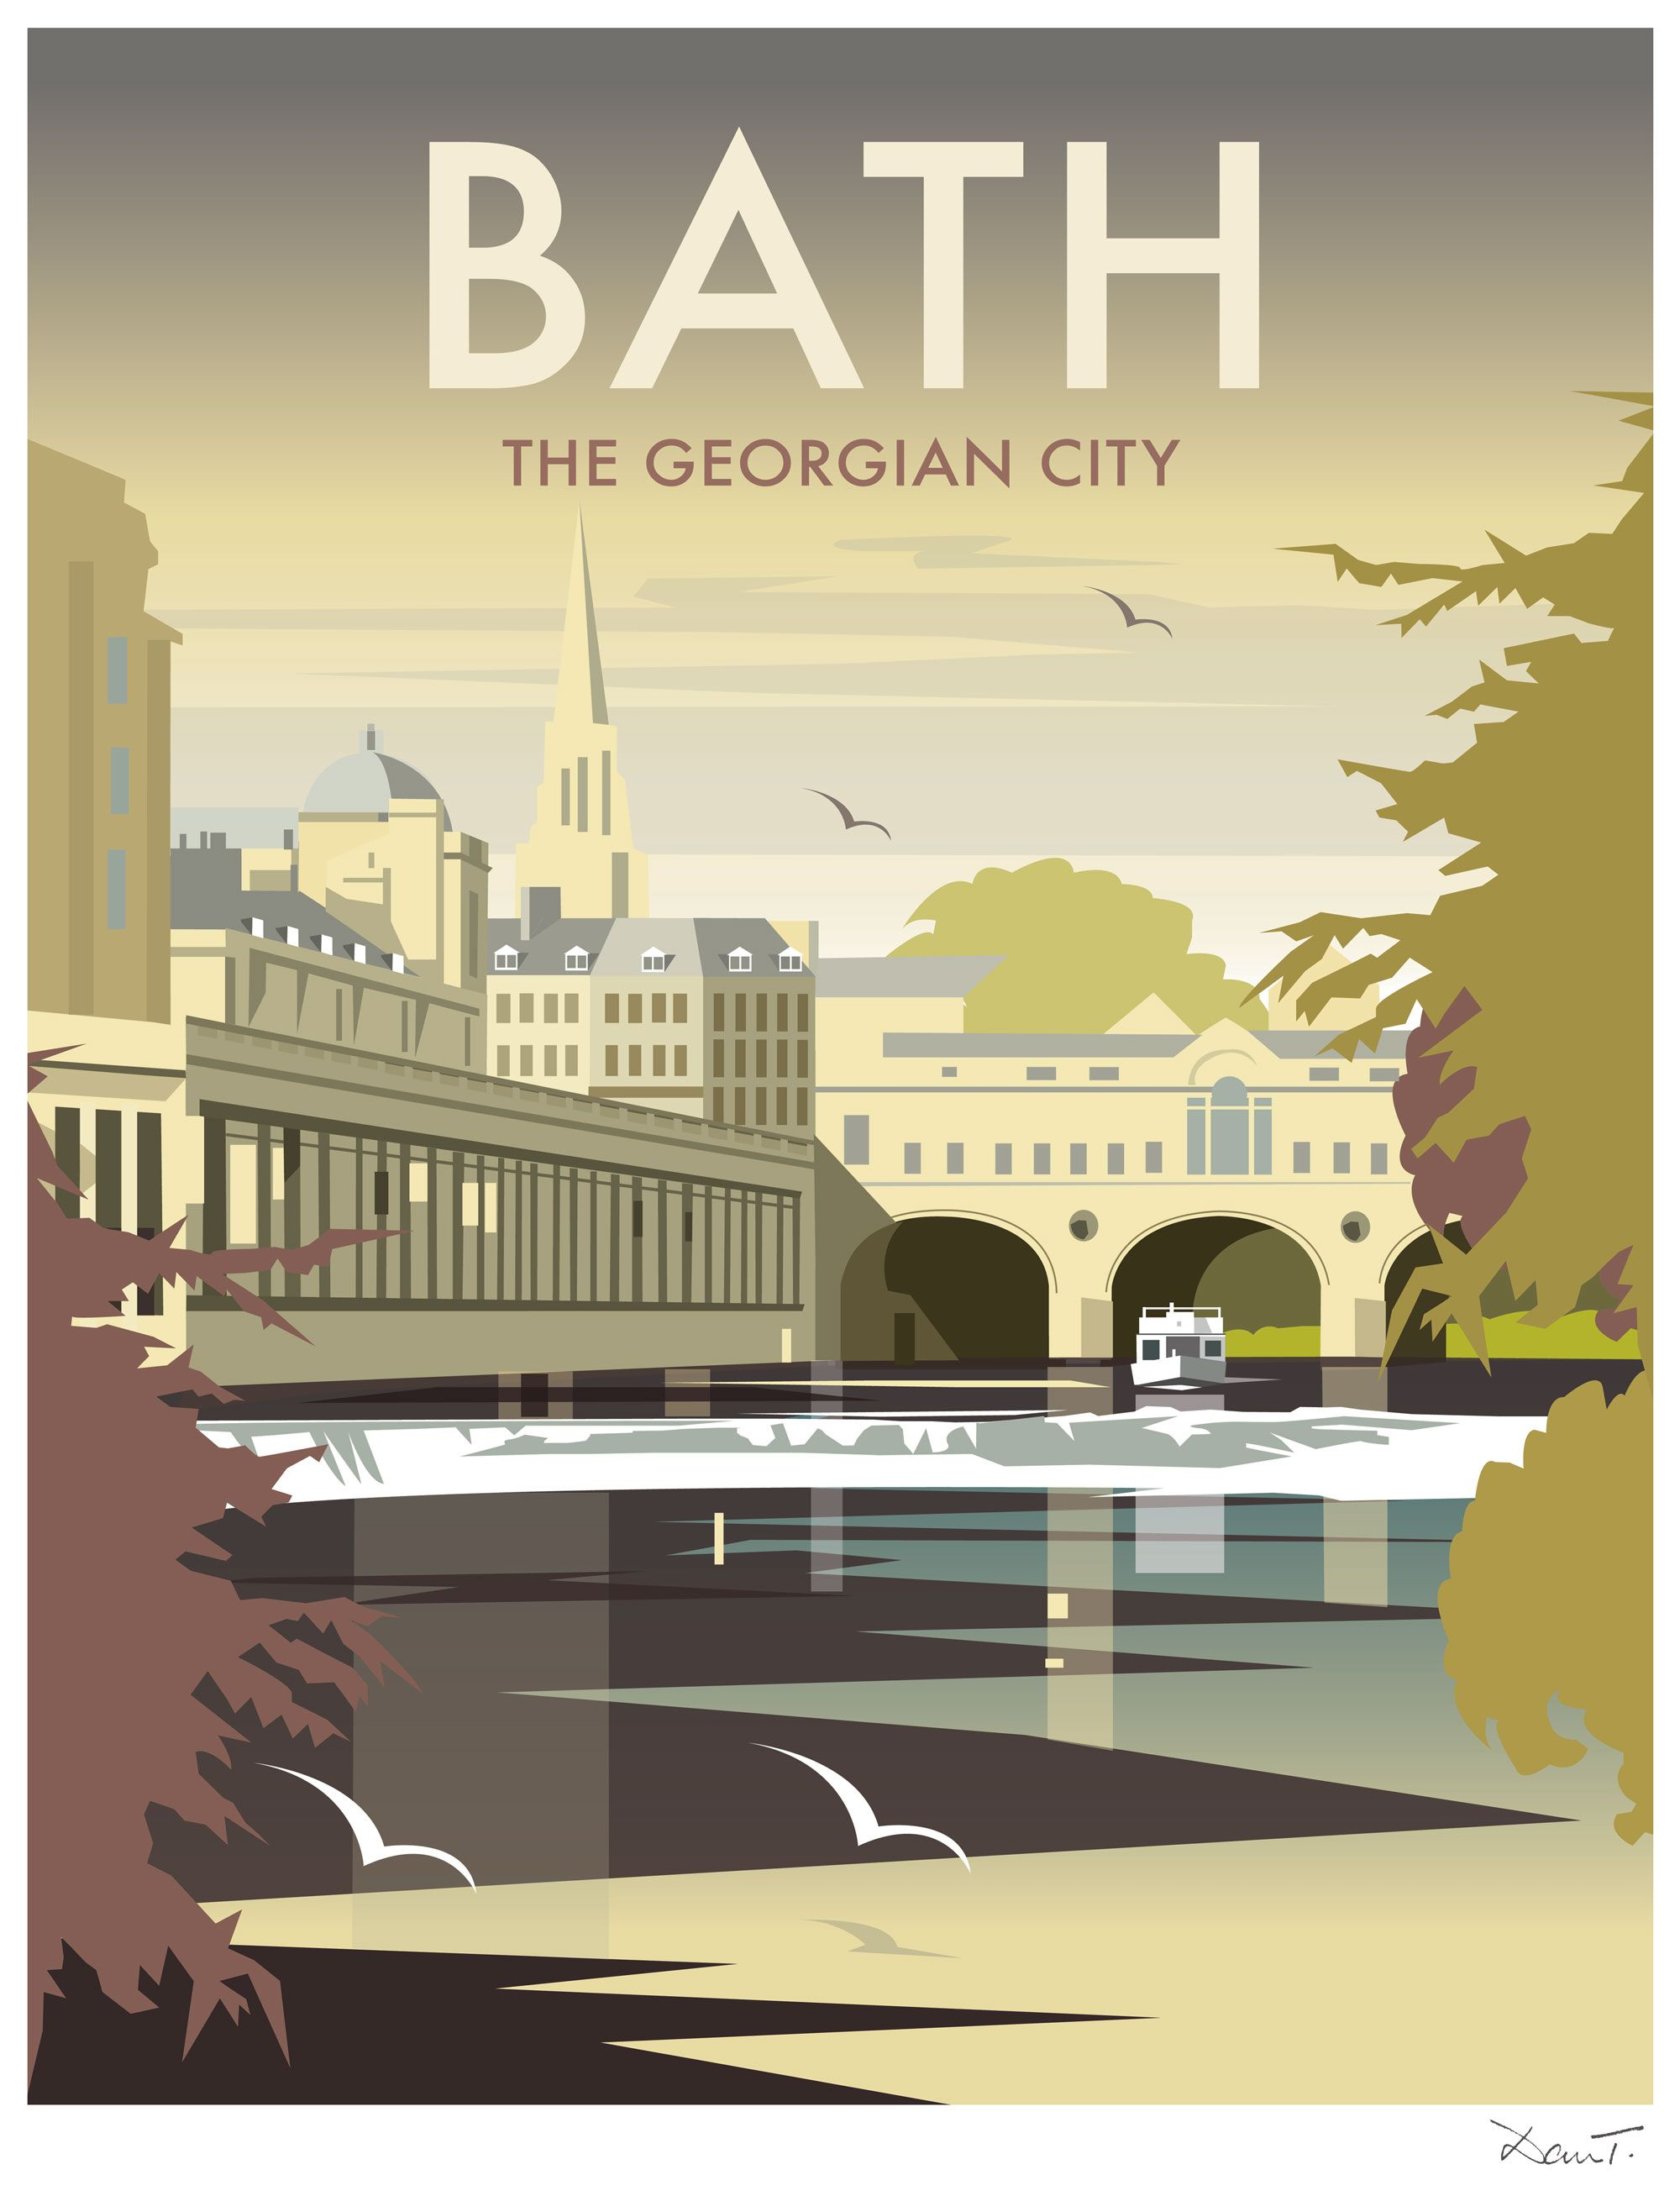 posters bath city art deco posters modern posters railway posters